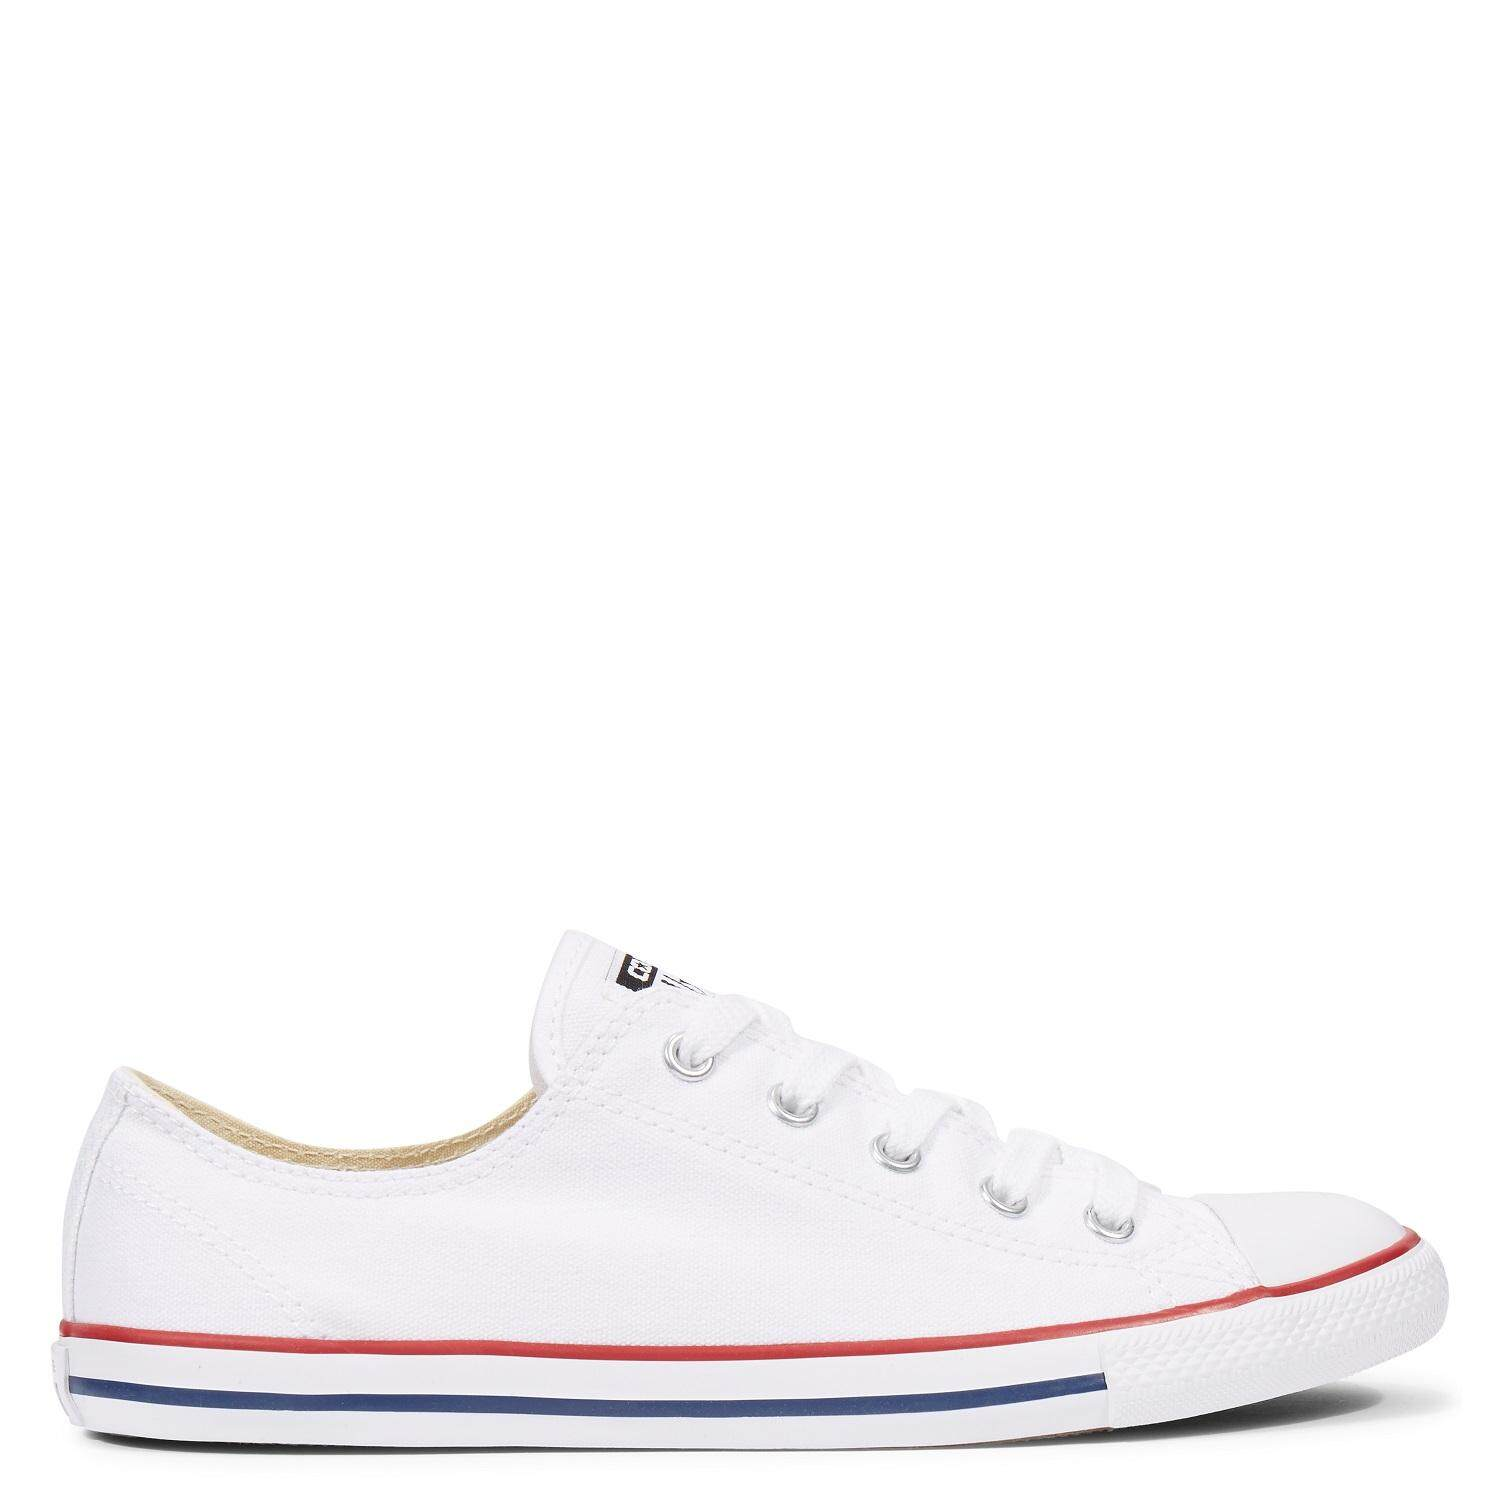 Converse Sneakers for the Best Price in Malaysia 78e9c8a743